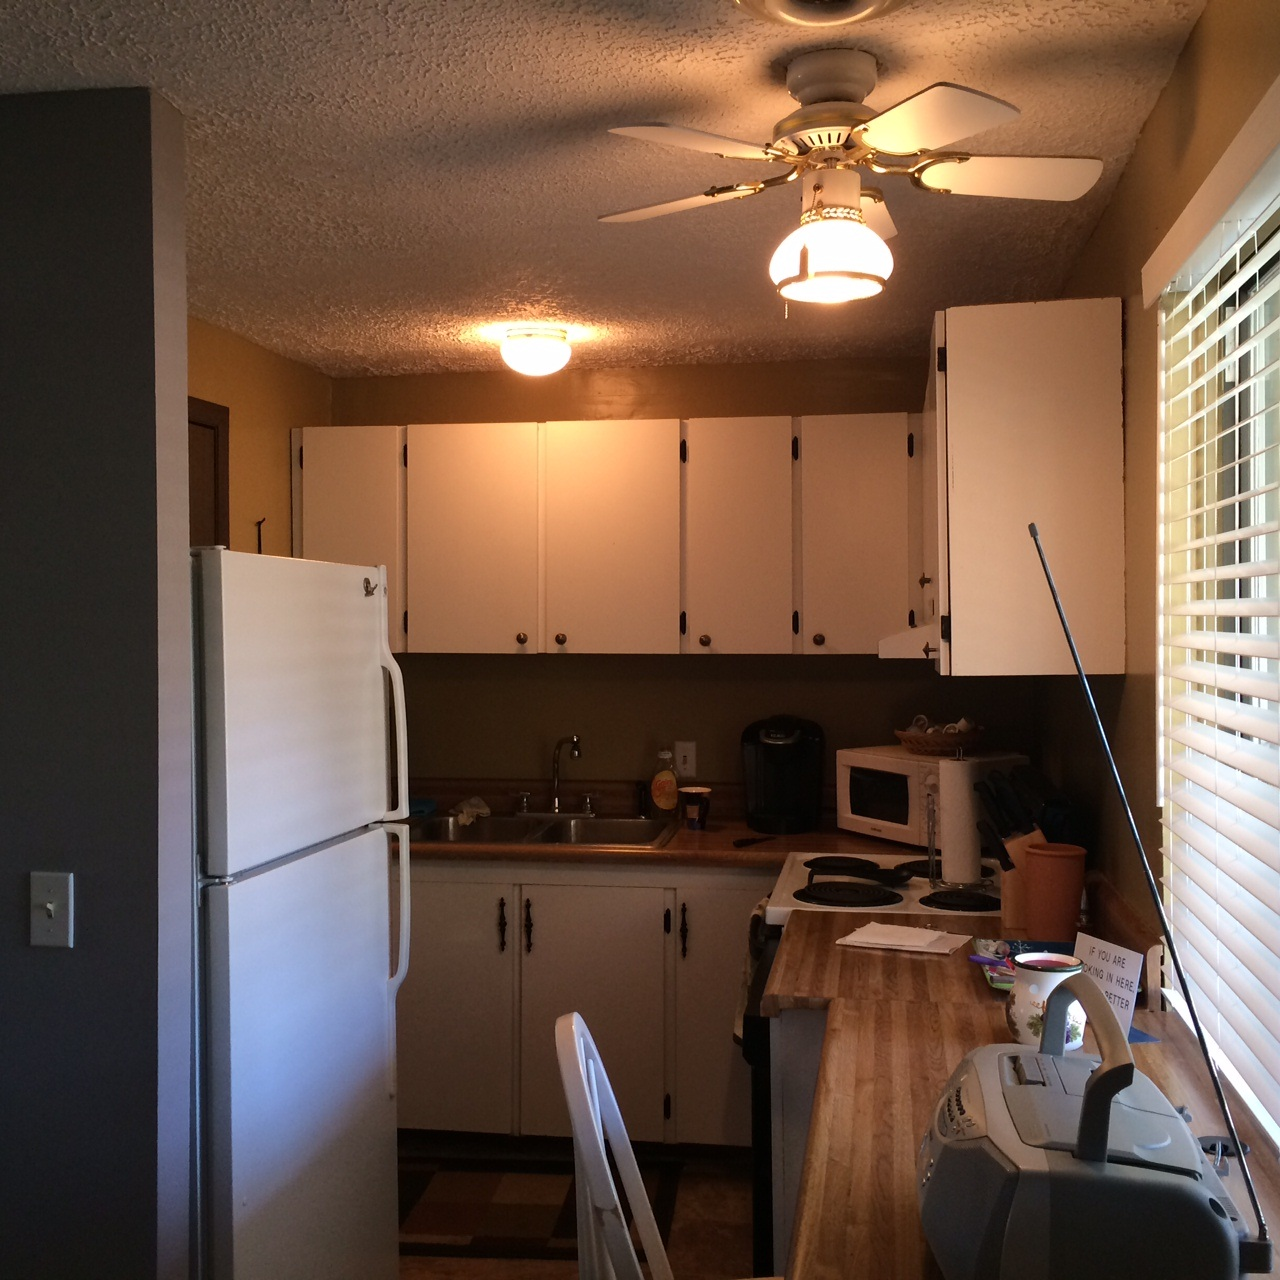 Condo Or Townhouse For Rent: 26 Pinetree: 3 Bedroom Vacation Townhouse Rental